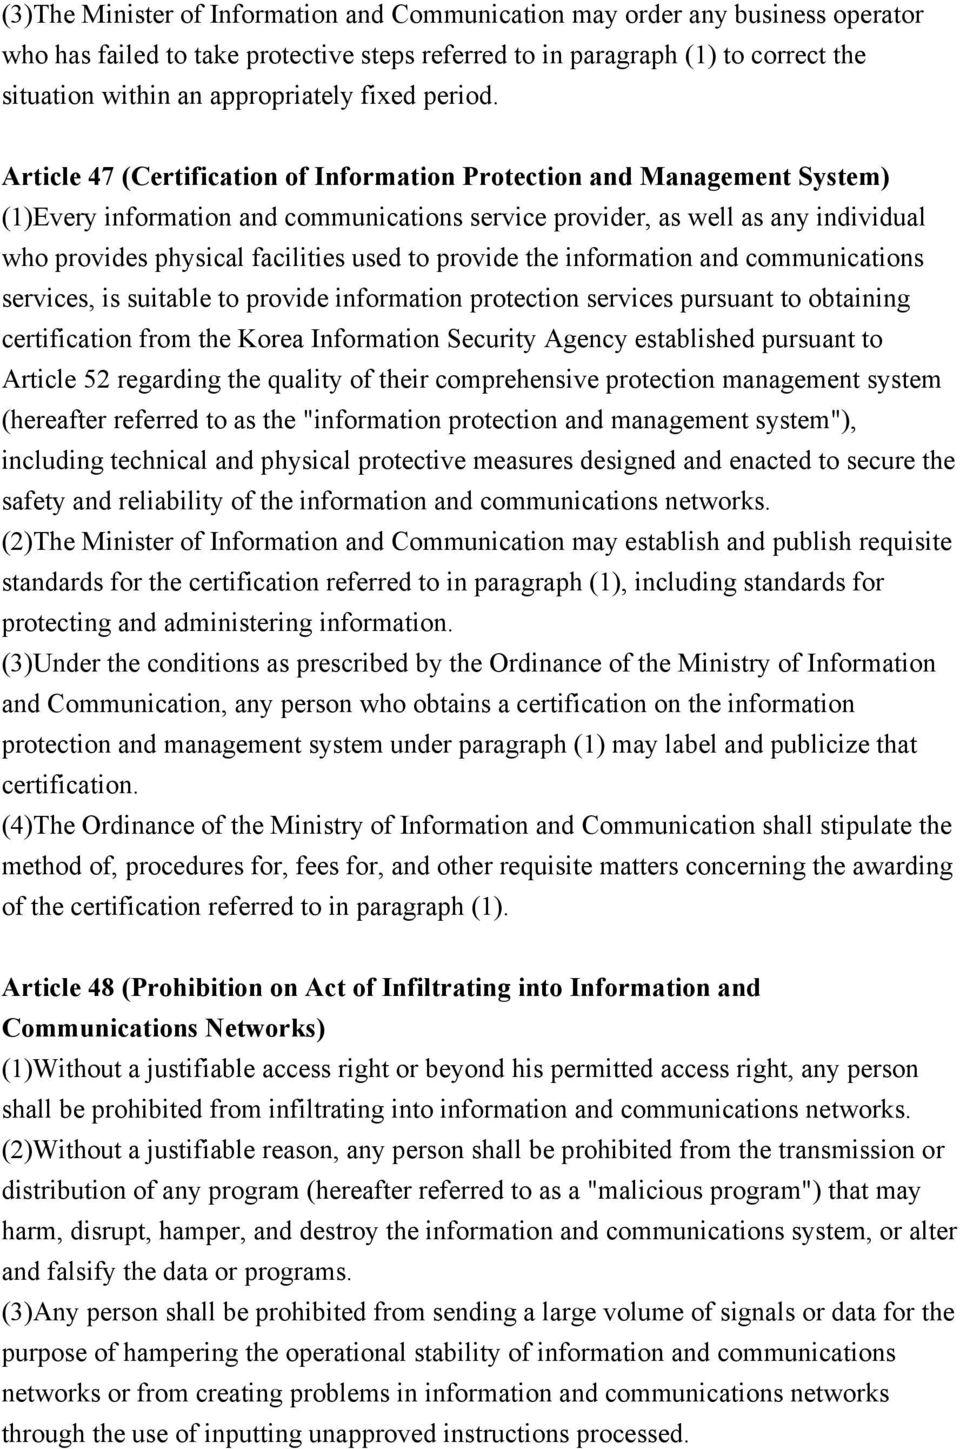 Article 47 (Certification of Information Protection and Management System) (1)Every information and communications service provider, as well as any individual who provides physical facilities used to